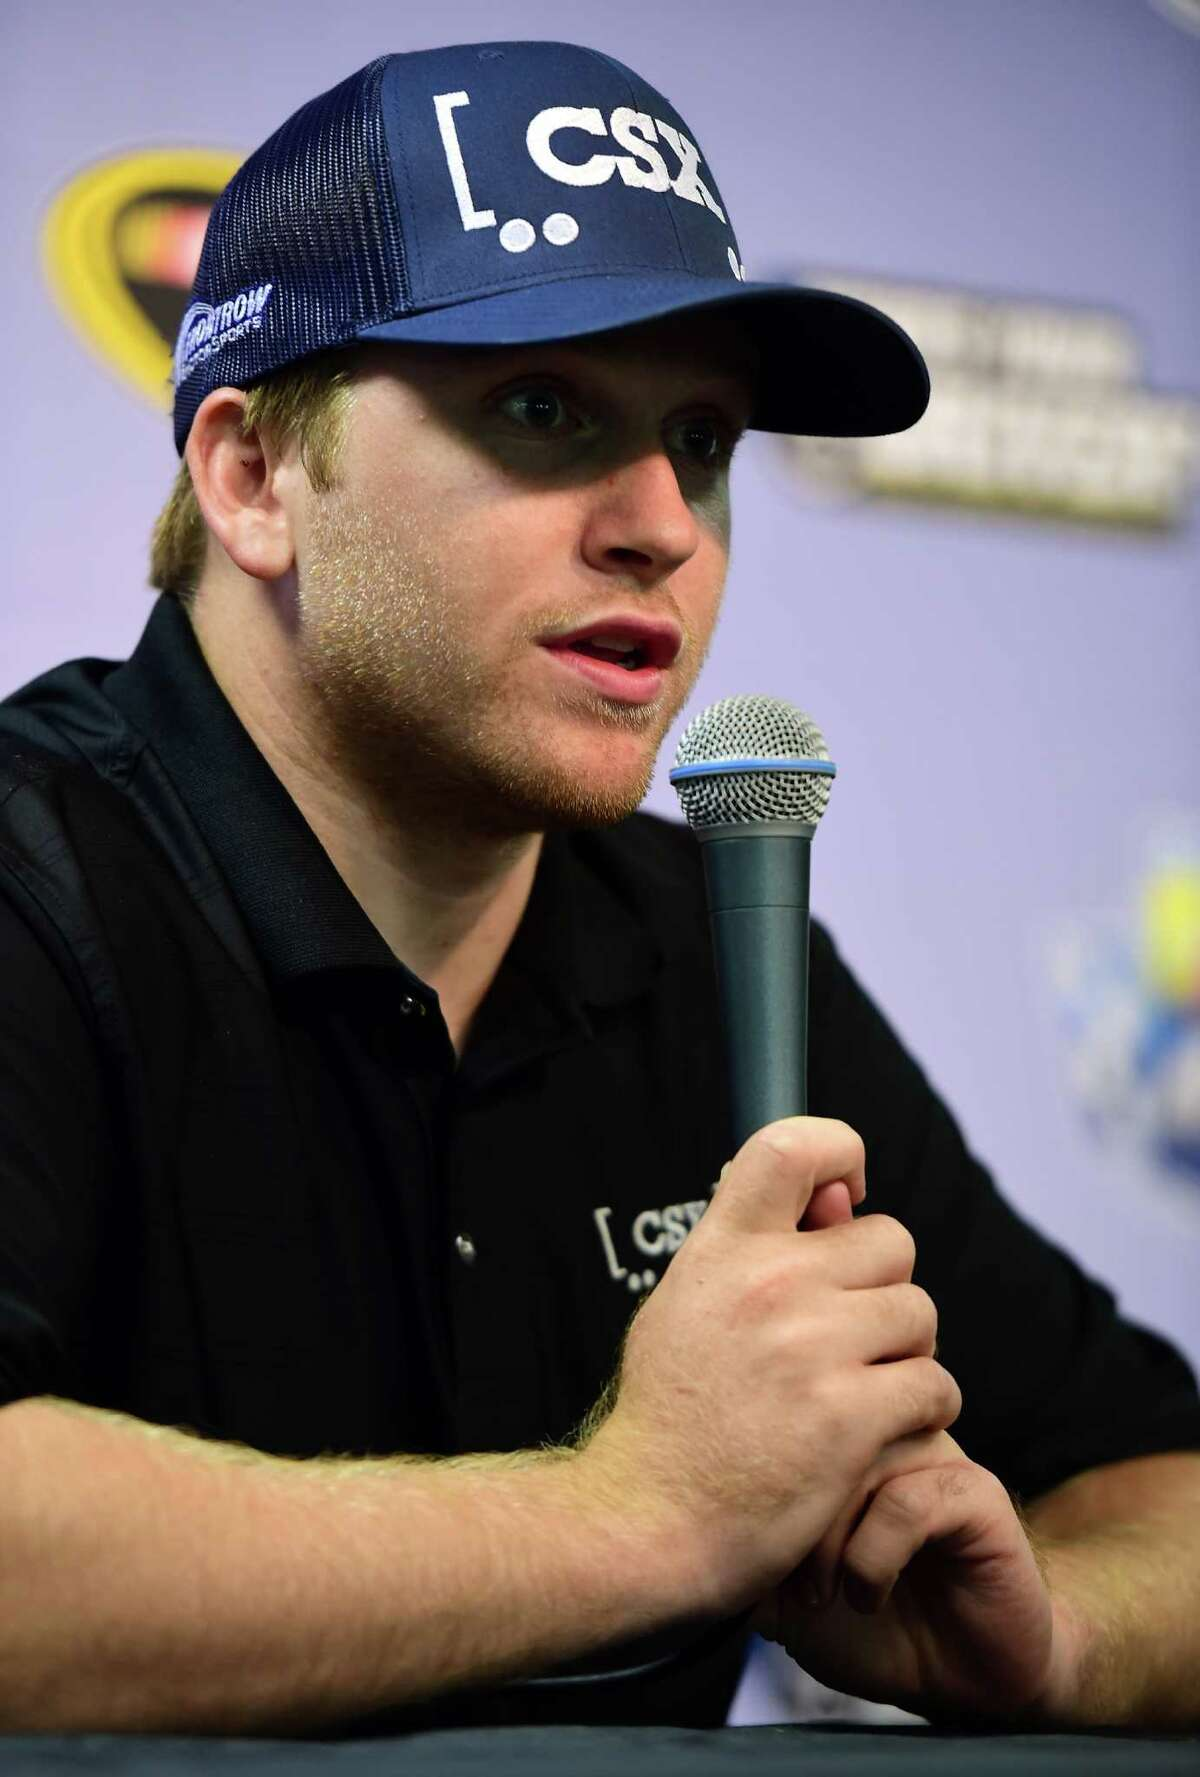 RICHMOND, VA - SEPTEMBER 09: Chris Buescher, driver of the #34 CSX - Play it Safe Ford, speaks with the media after practice for the NASCAR Sprint Cup Series Federated Auto Parts 400 at Richmond International Raceway on September 9, 2016 in Richmond, Virginia. (Photo by Jared C. Tilton/Getty Images) ORG XMIT: 595734743